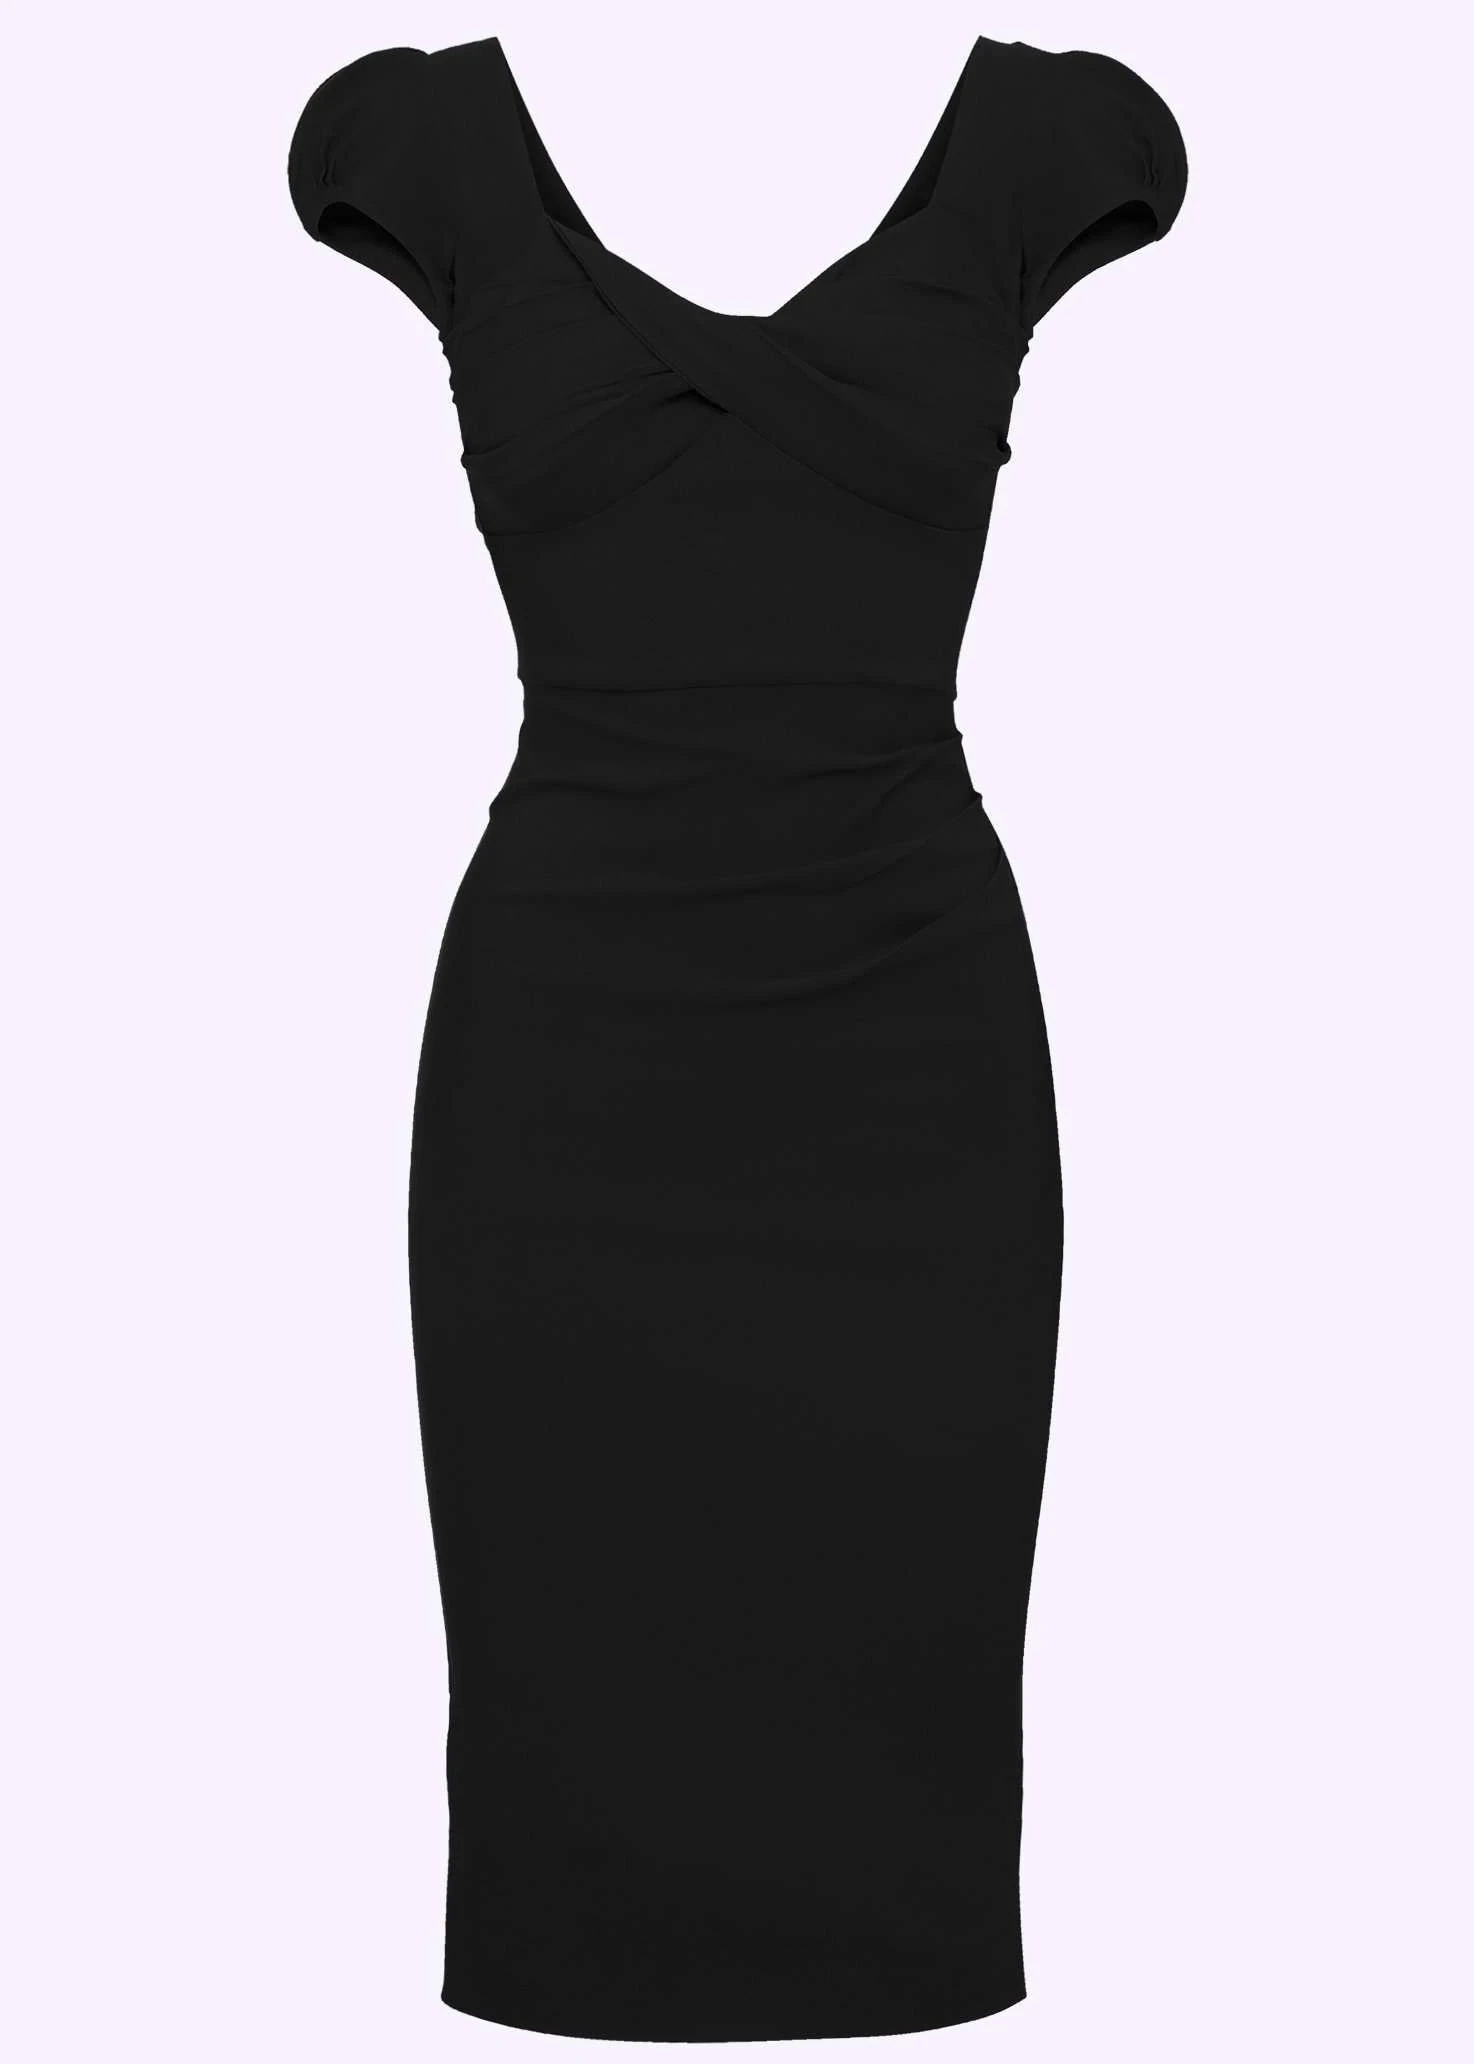 vintage style pencil dress with draping